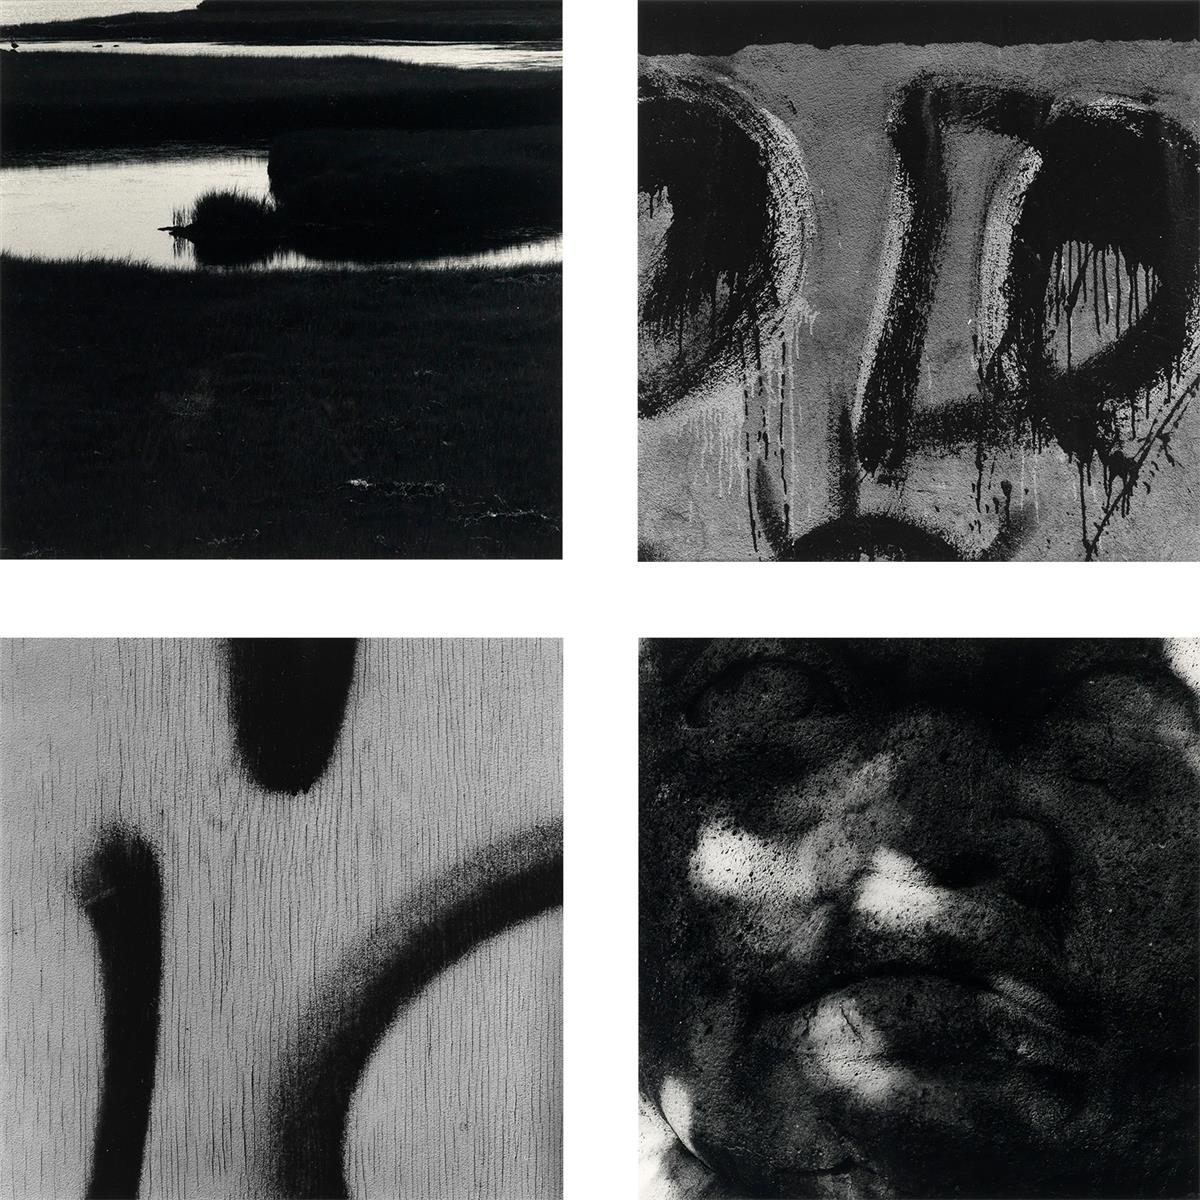 AARON-SISKIND-(1903-1991)-Set-of-50-signed-photographs-of-ma